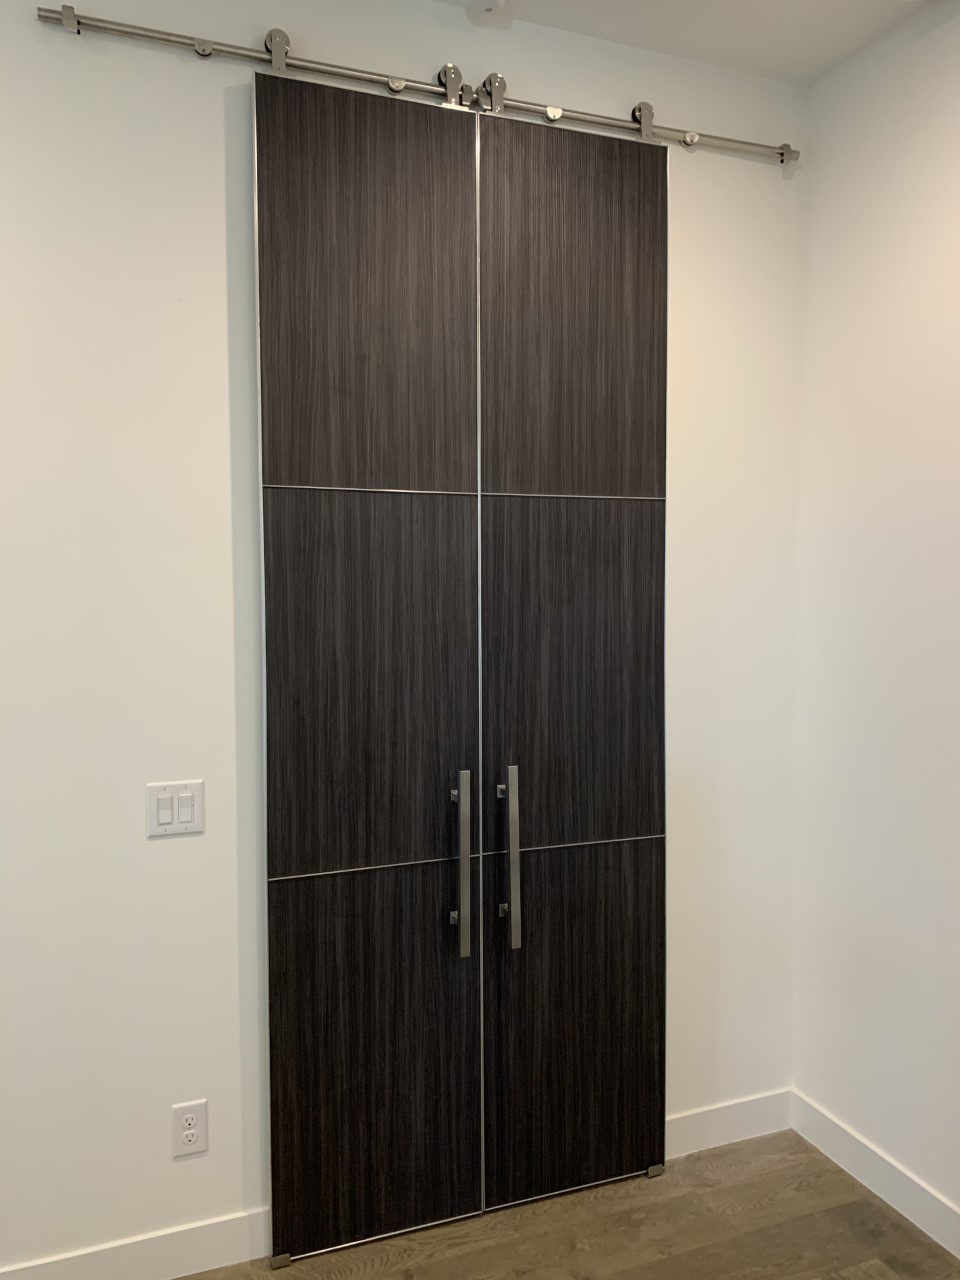 bella laminate double barn doors with stainless seams